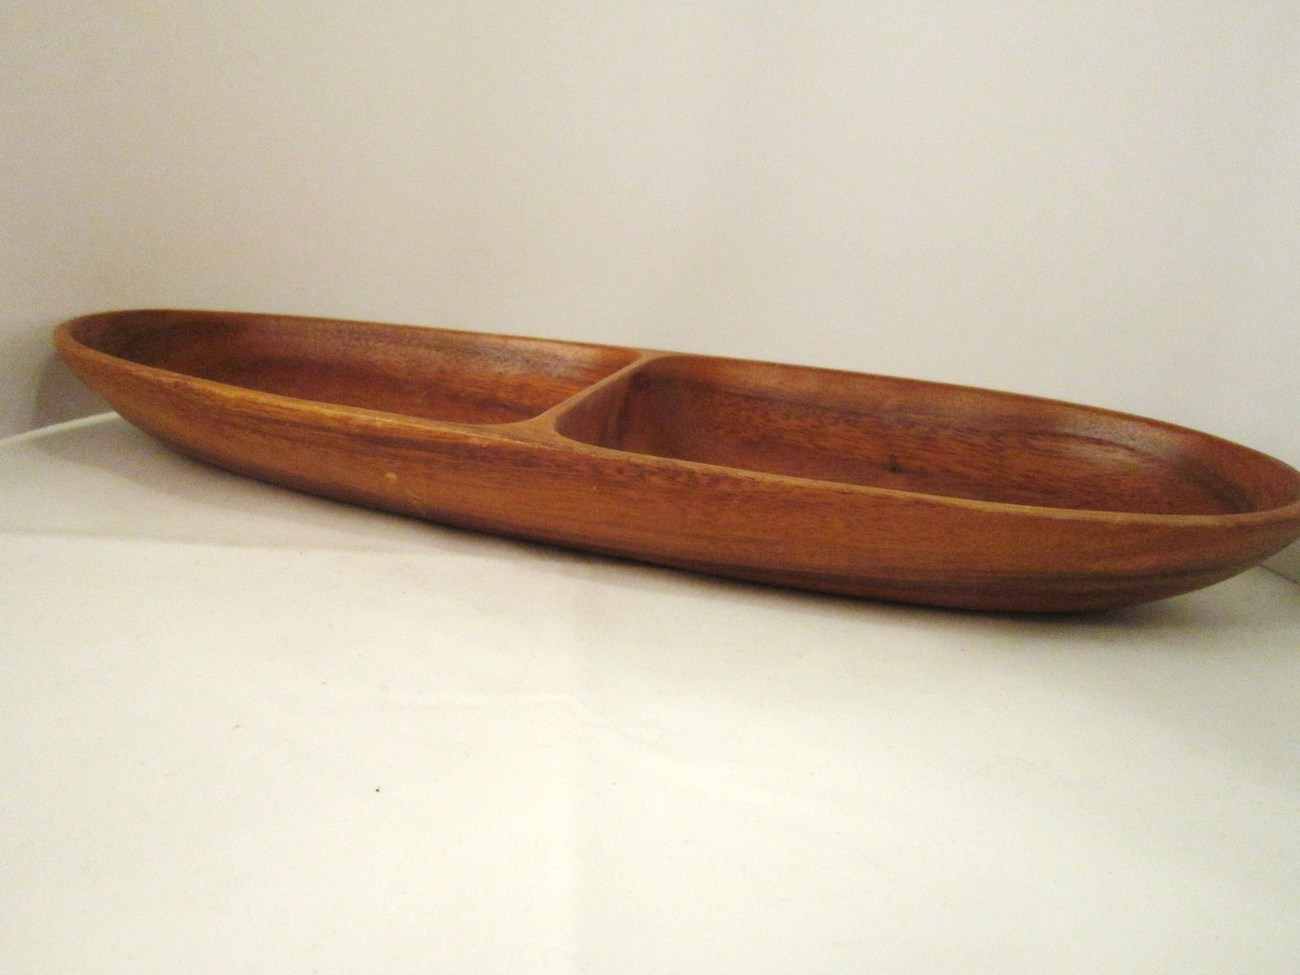 Vintage Woodenware Tray and Napkin Rings, Divided Tray Hand Crafted